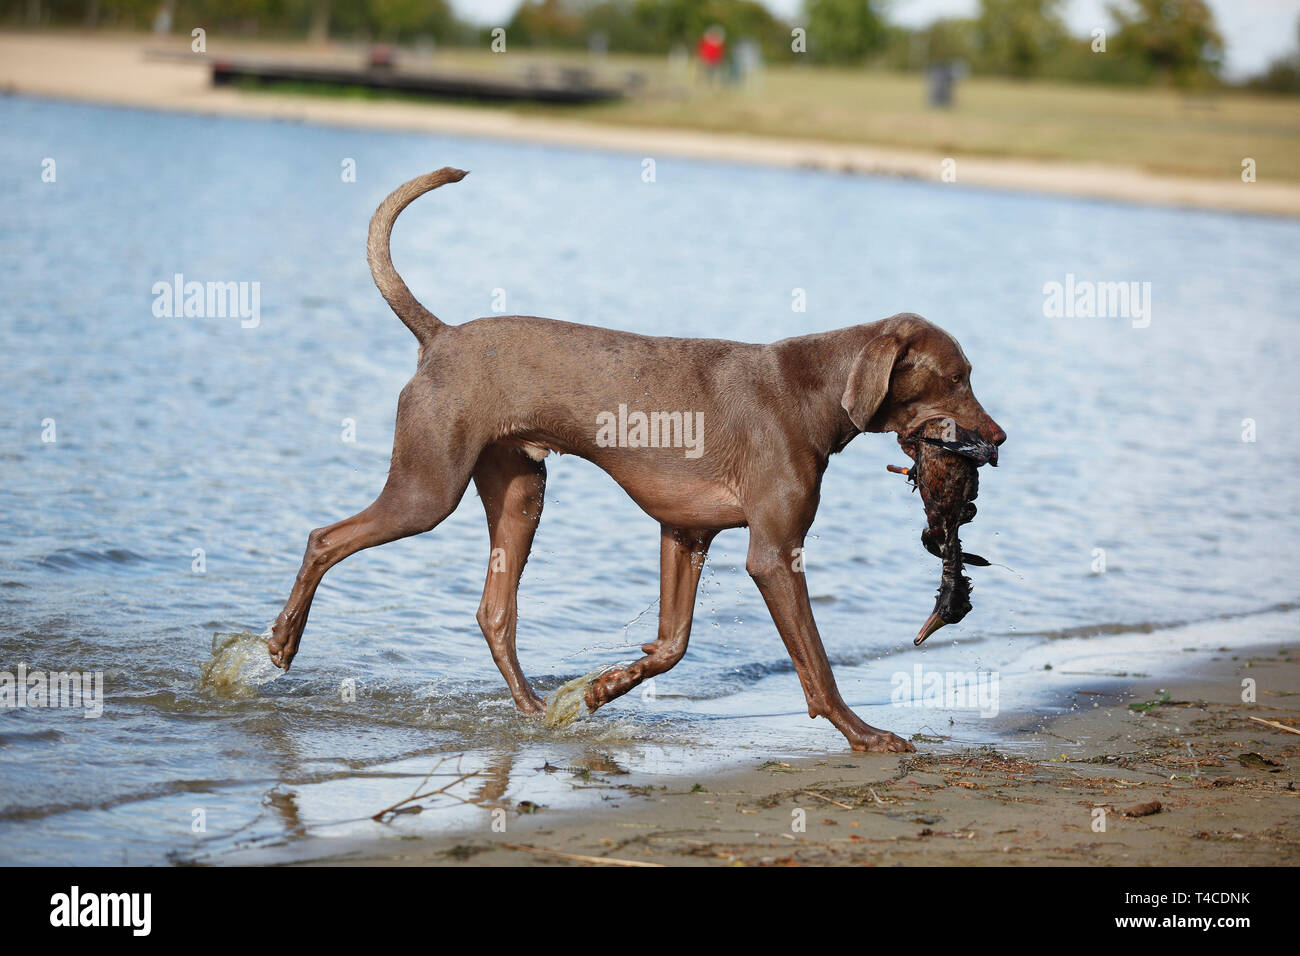 Weimaraner, male, retrieving duck - Stock Image